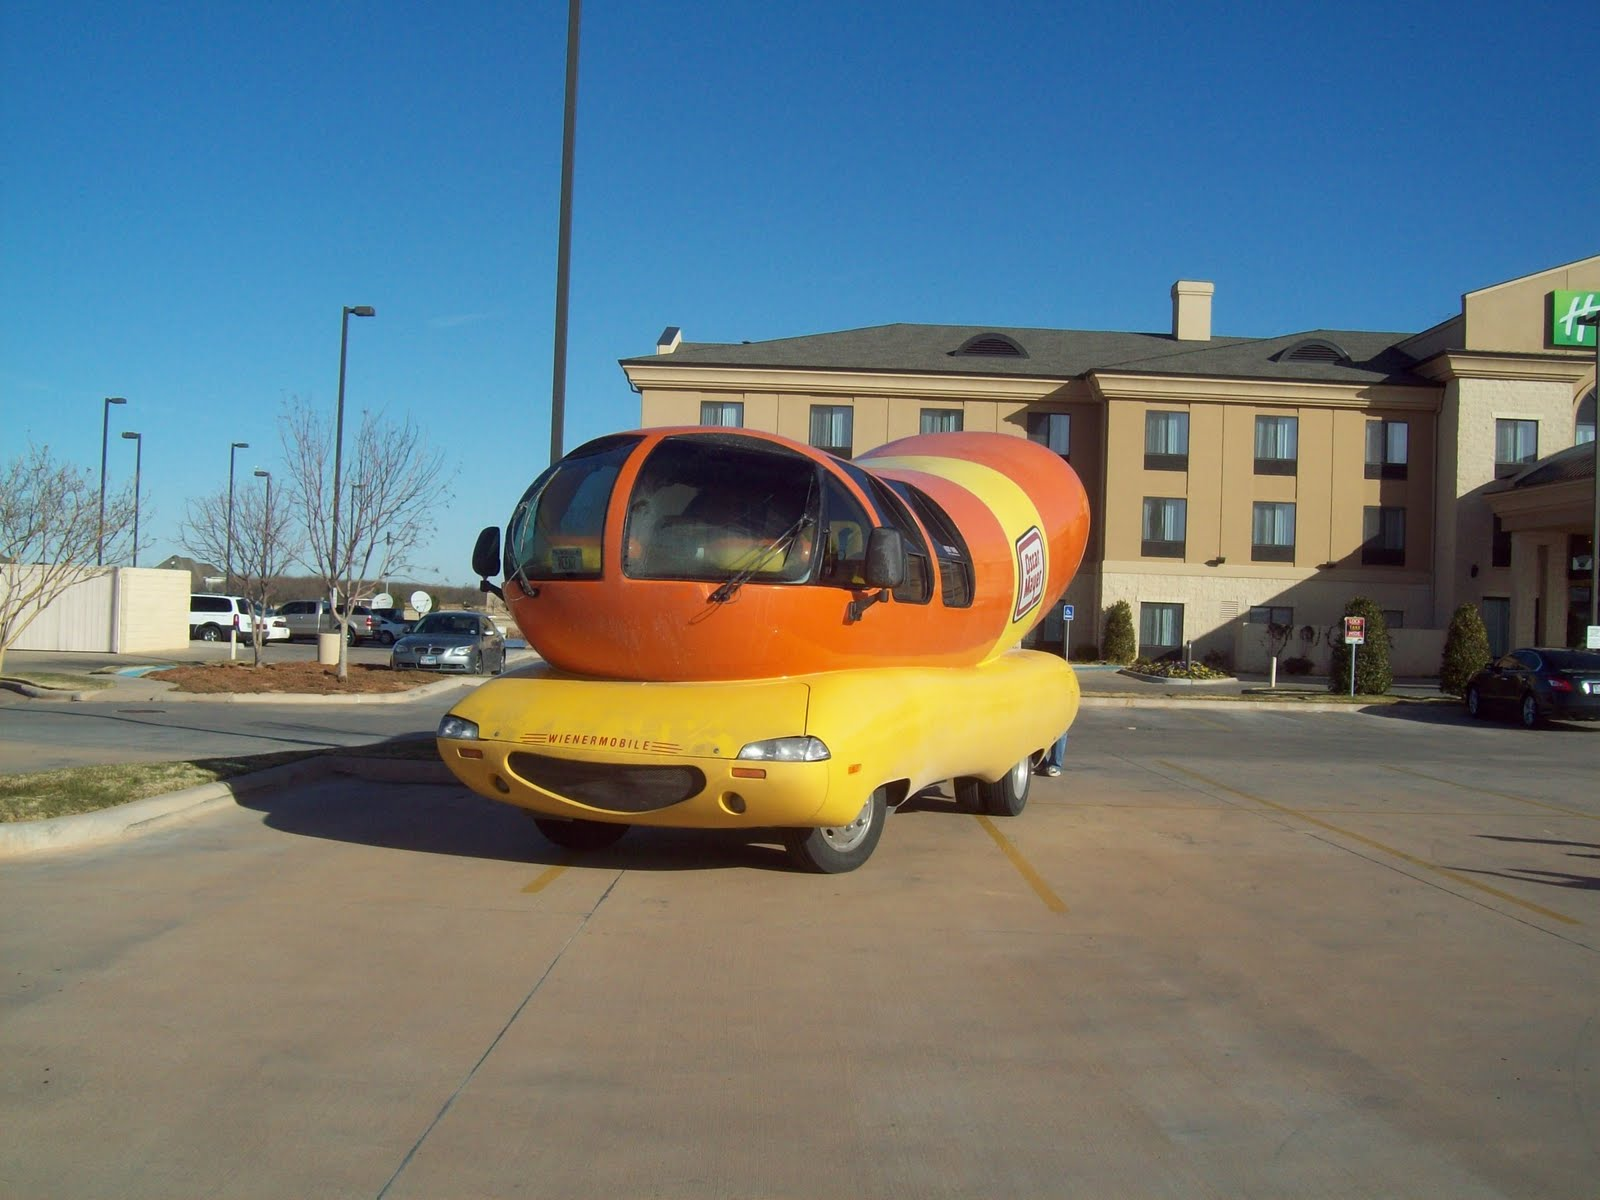 Weinermobile 26 2011 further Courtweek likewise Racefor50states files wordpress likewise Courtweek moreover 1950s. on oscar mayer wienermobile beach california